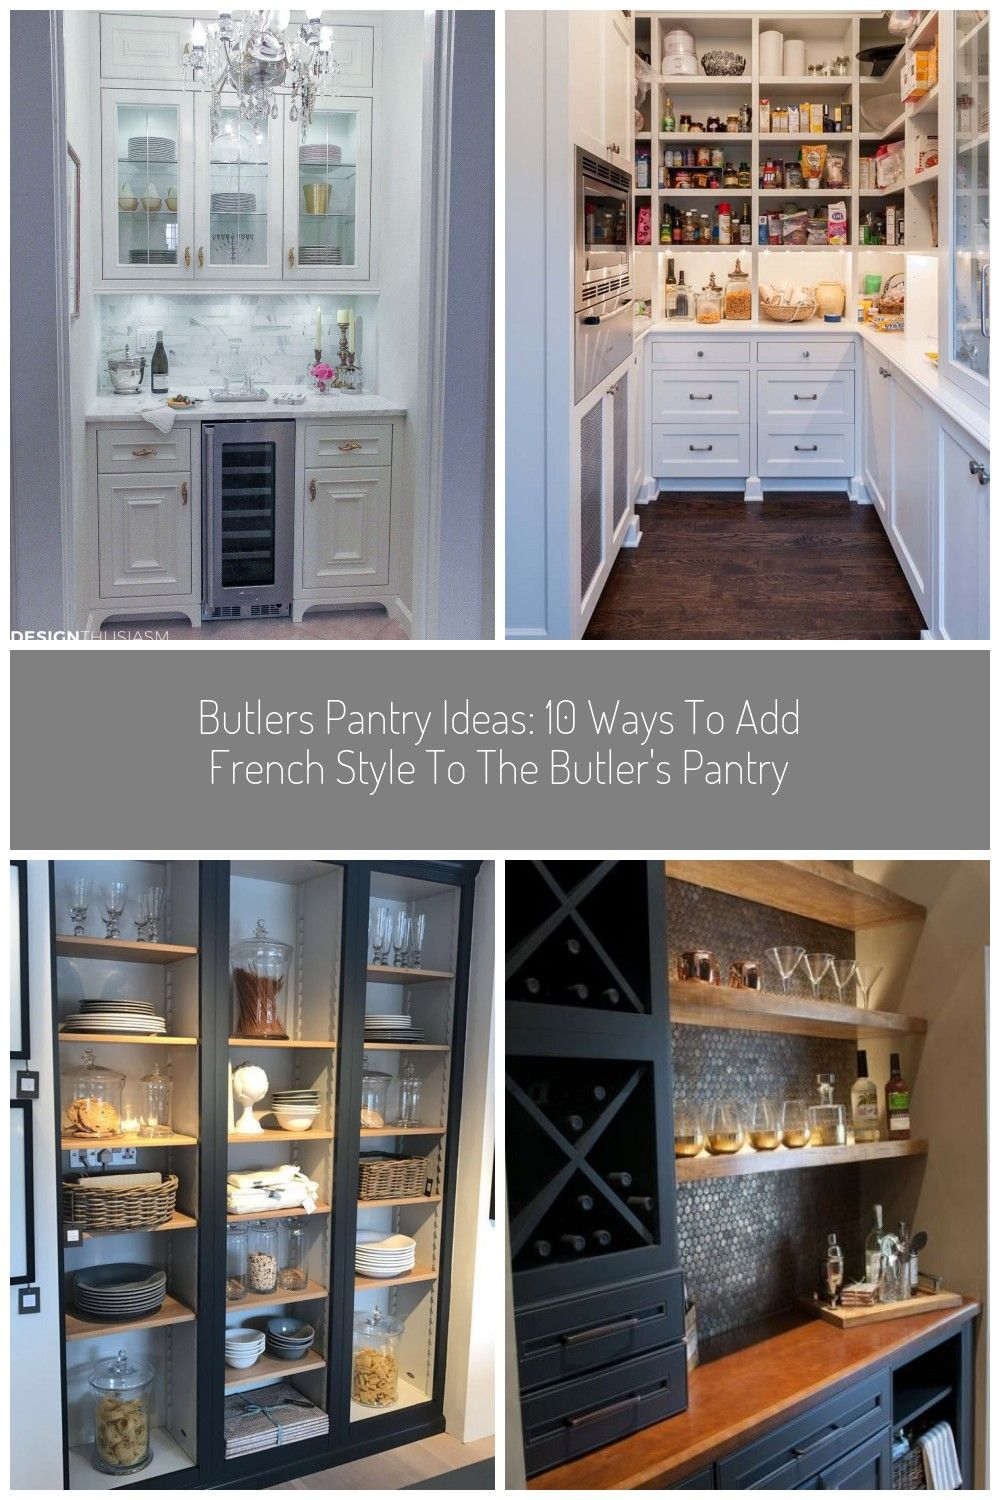 If Youre Looking For Butlers Pantry Ideas To Decorate That Curious Little Room Here Are 10 Ways To Add French Sty In 2020 Butler Pantry Spacious Kitchens Pantry Design